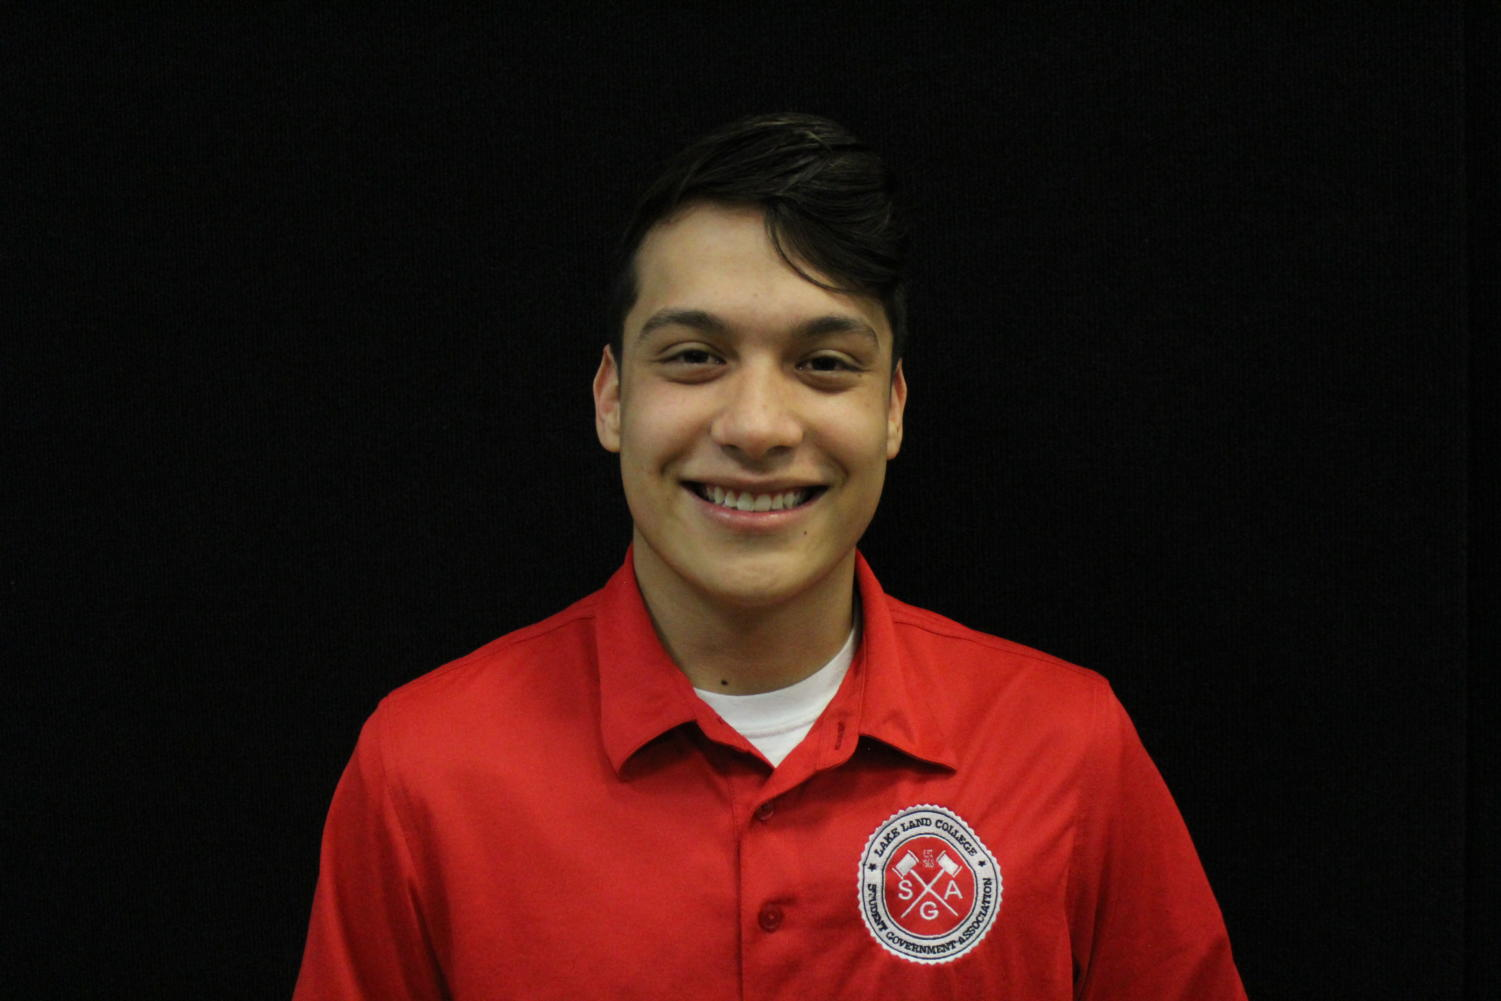 Eusebio+is+a+Business+Administration+major+from+Arthur%2C+Illinois.+In+high+school%2C+he+served+as+a+student+council+representative+and+has+served+for+one+year+as+a+delegate+at+Lake+Land.+He+cites+that+he+%E2%80%9Clikes+being+a+part+of+a+group+that+turns+words+into+actions%E2%80%9D+as+his+reasoning+for+joining+the+group.+As+for+a+fun+fact%2C+he+would+like+all+of+his+constituents+to+recognize+that++72%25+of+his+name+is+comprised+of+vowels.